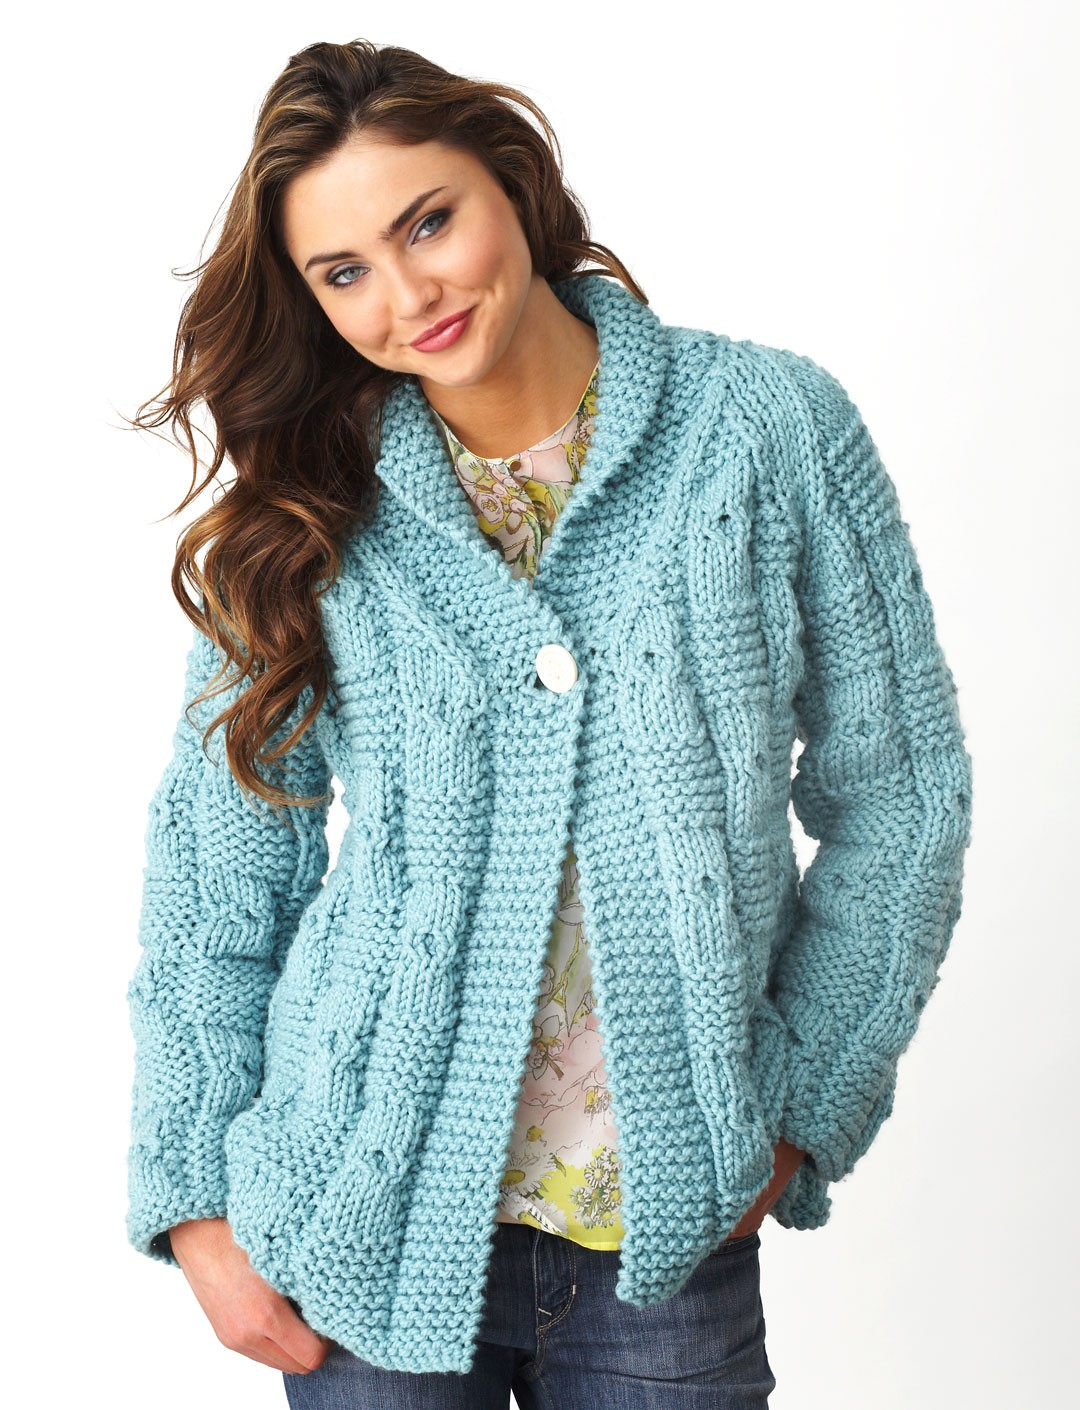 Chunky Knit Jacket Patterns Free : Bernat Textured Checks Cardigan, Knit Pattern Yarnspirations